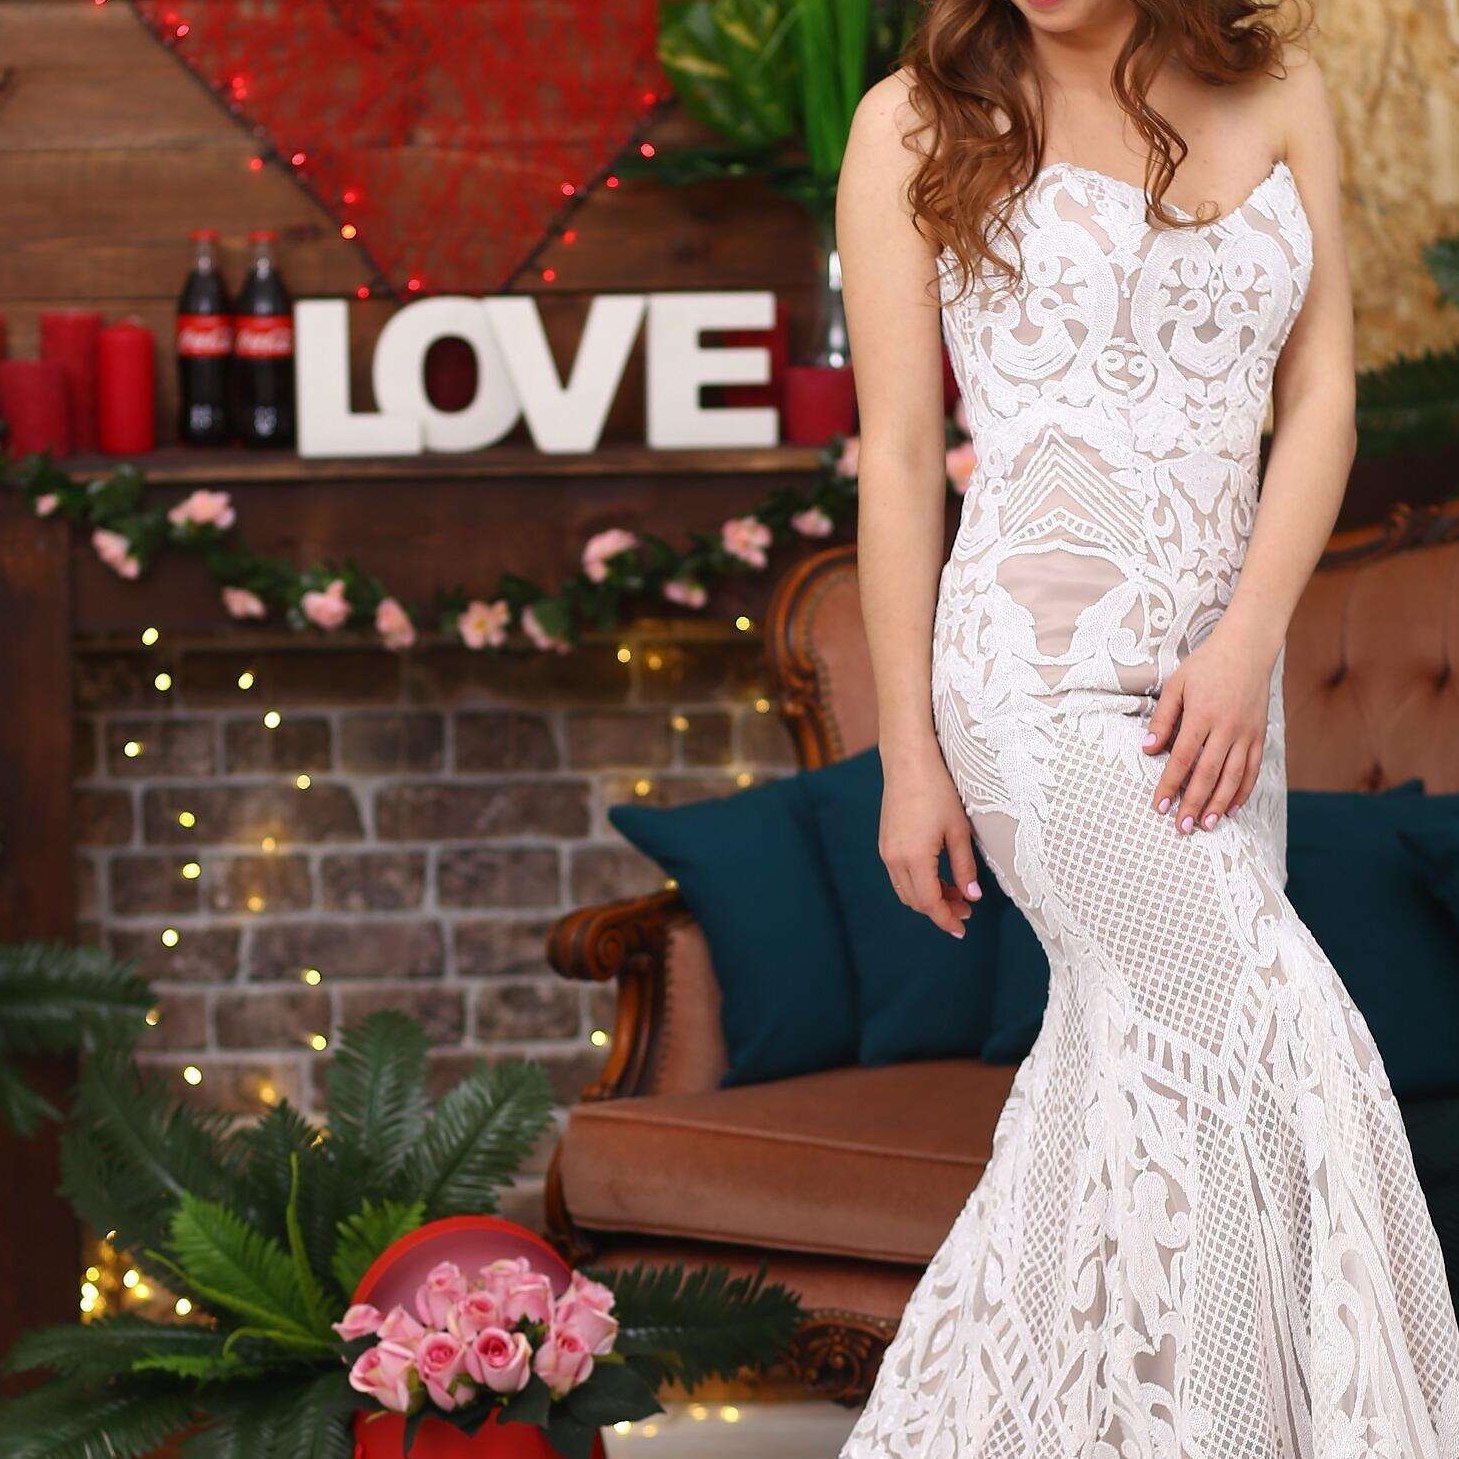 PEV-L3036 customized real sweetheart strapless sequined bridal gown mermaid wedding dress 2021